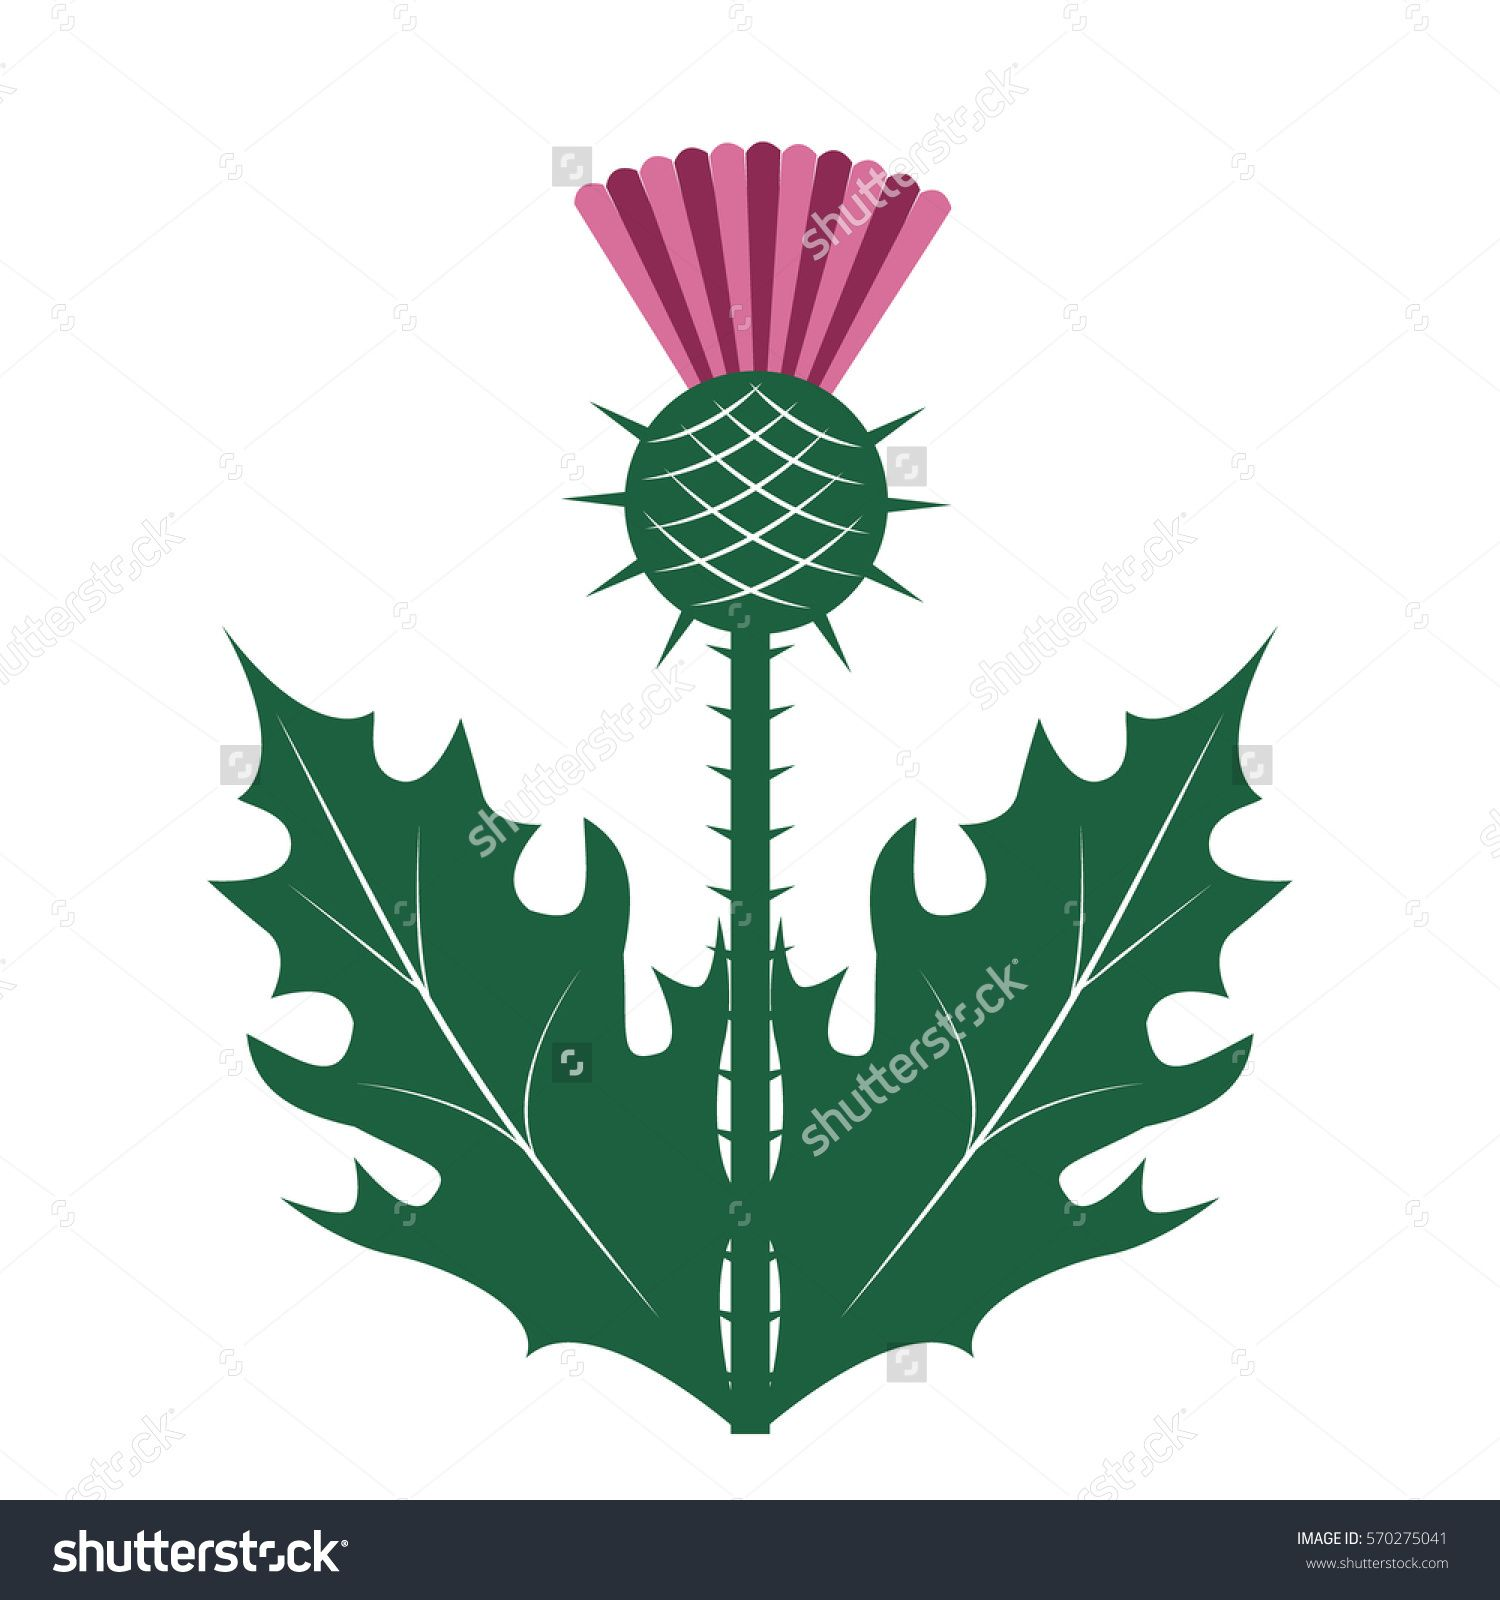 Thistle symbol of scotland vector illustration flora thistle symbol of scotland vector illustration buycottarizona Image collections